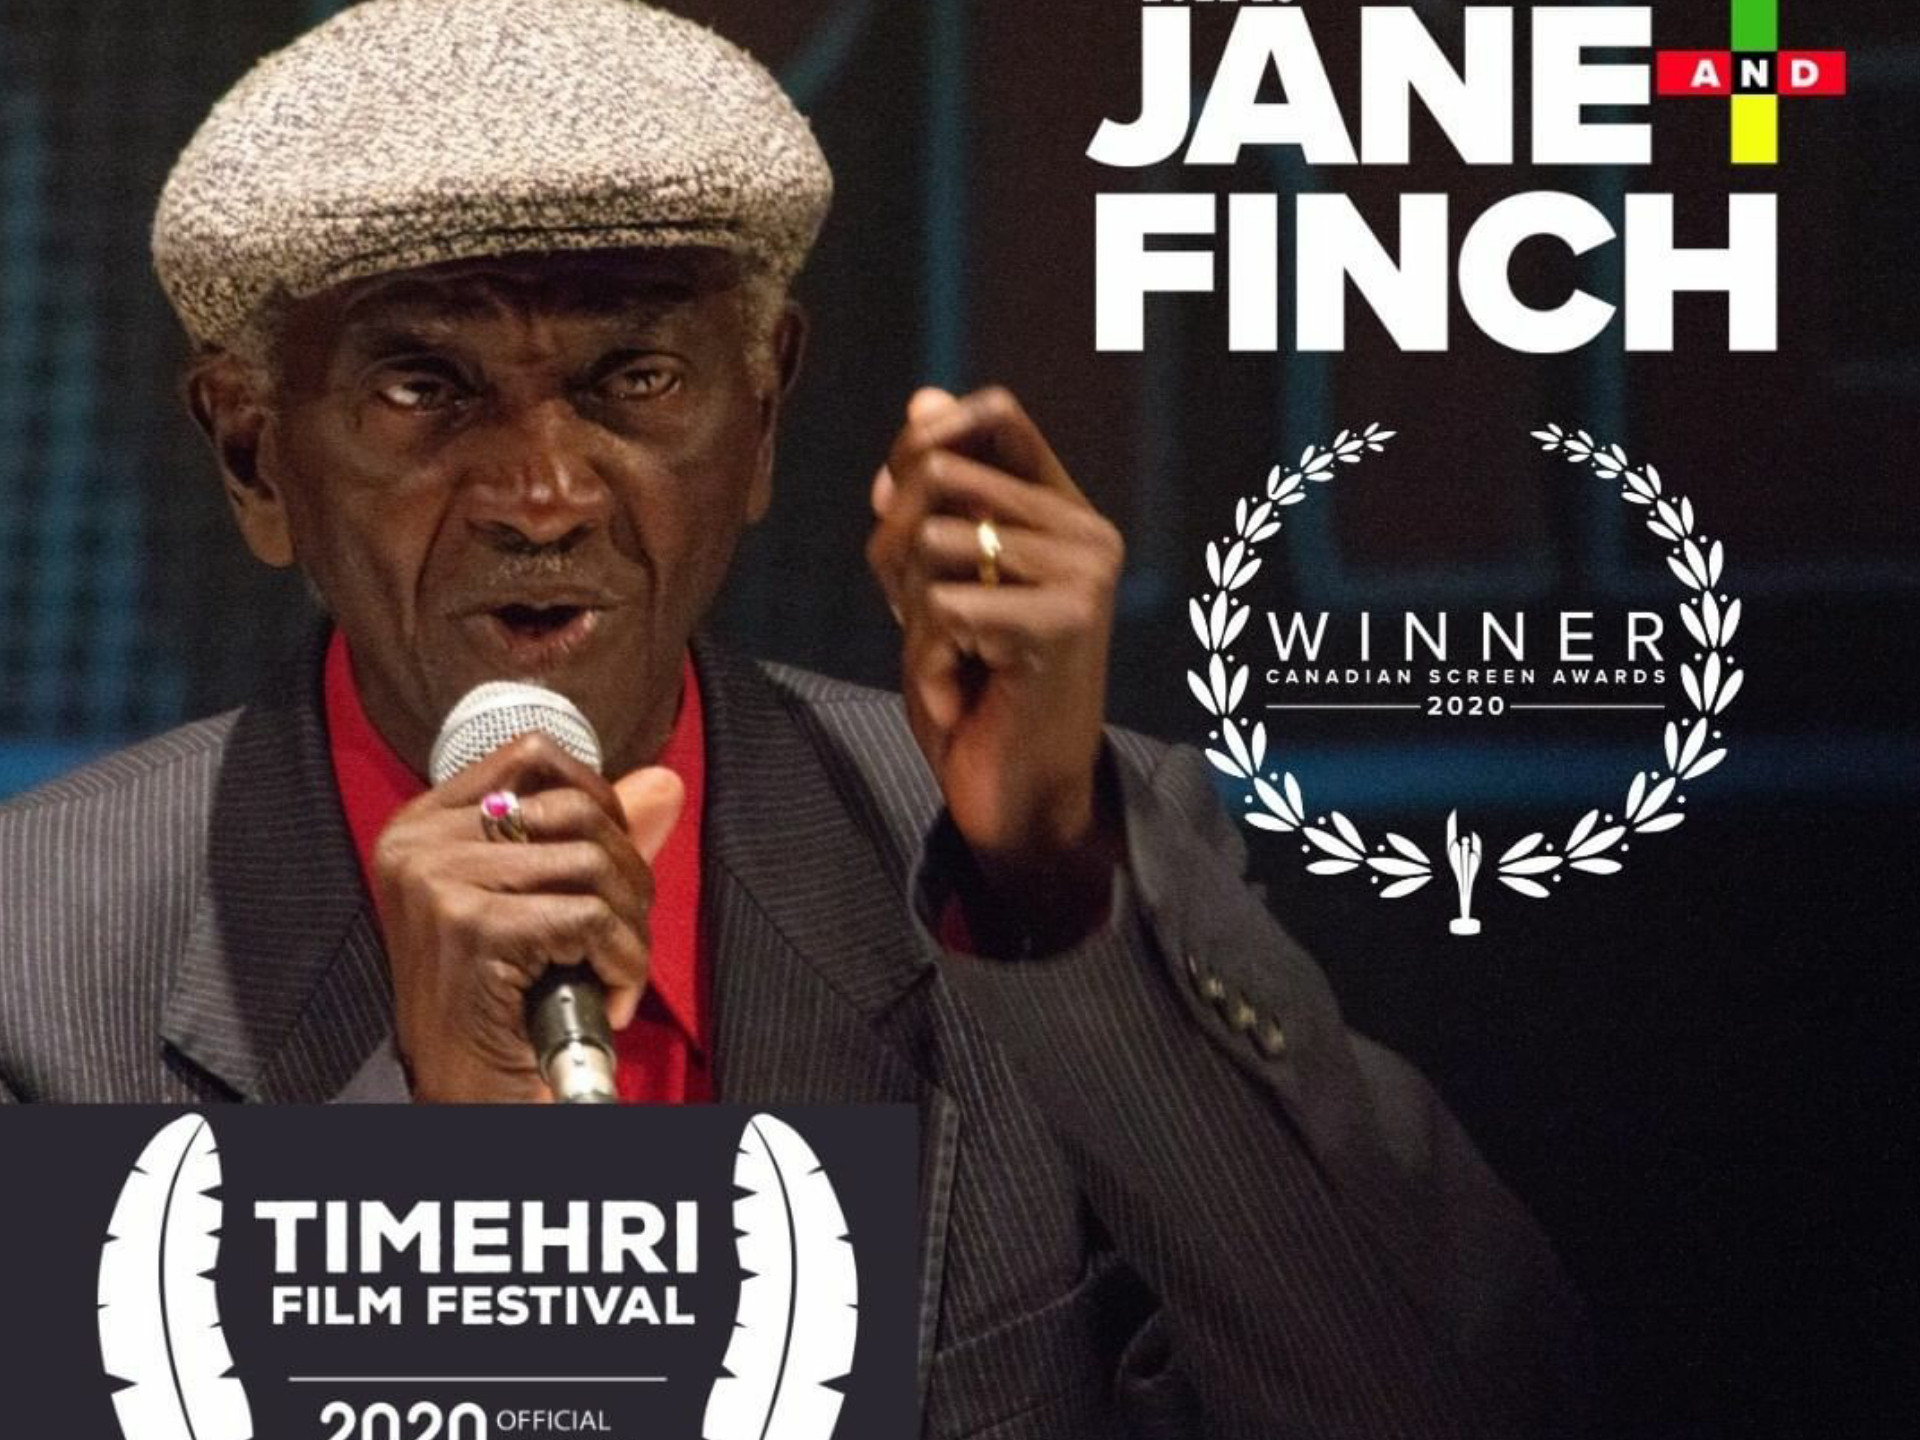 Mr. Jane and Finch Documentary